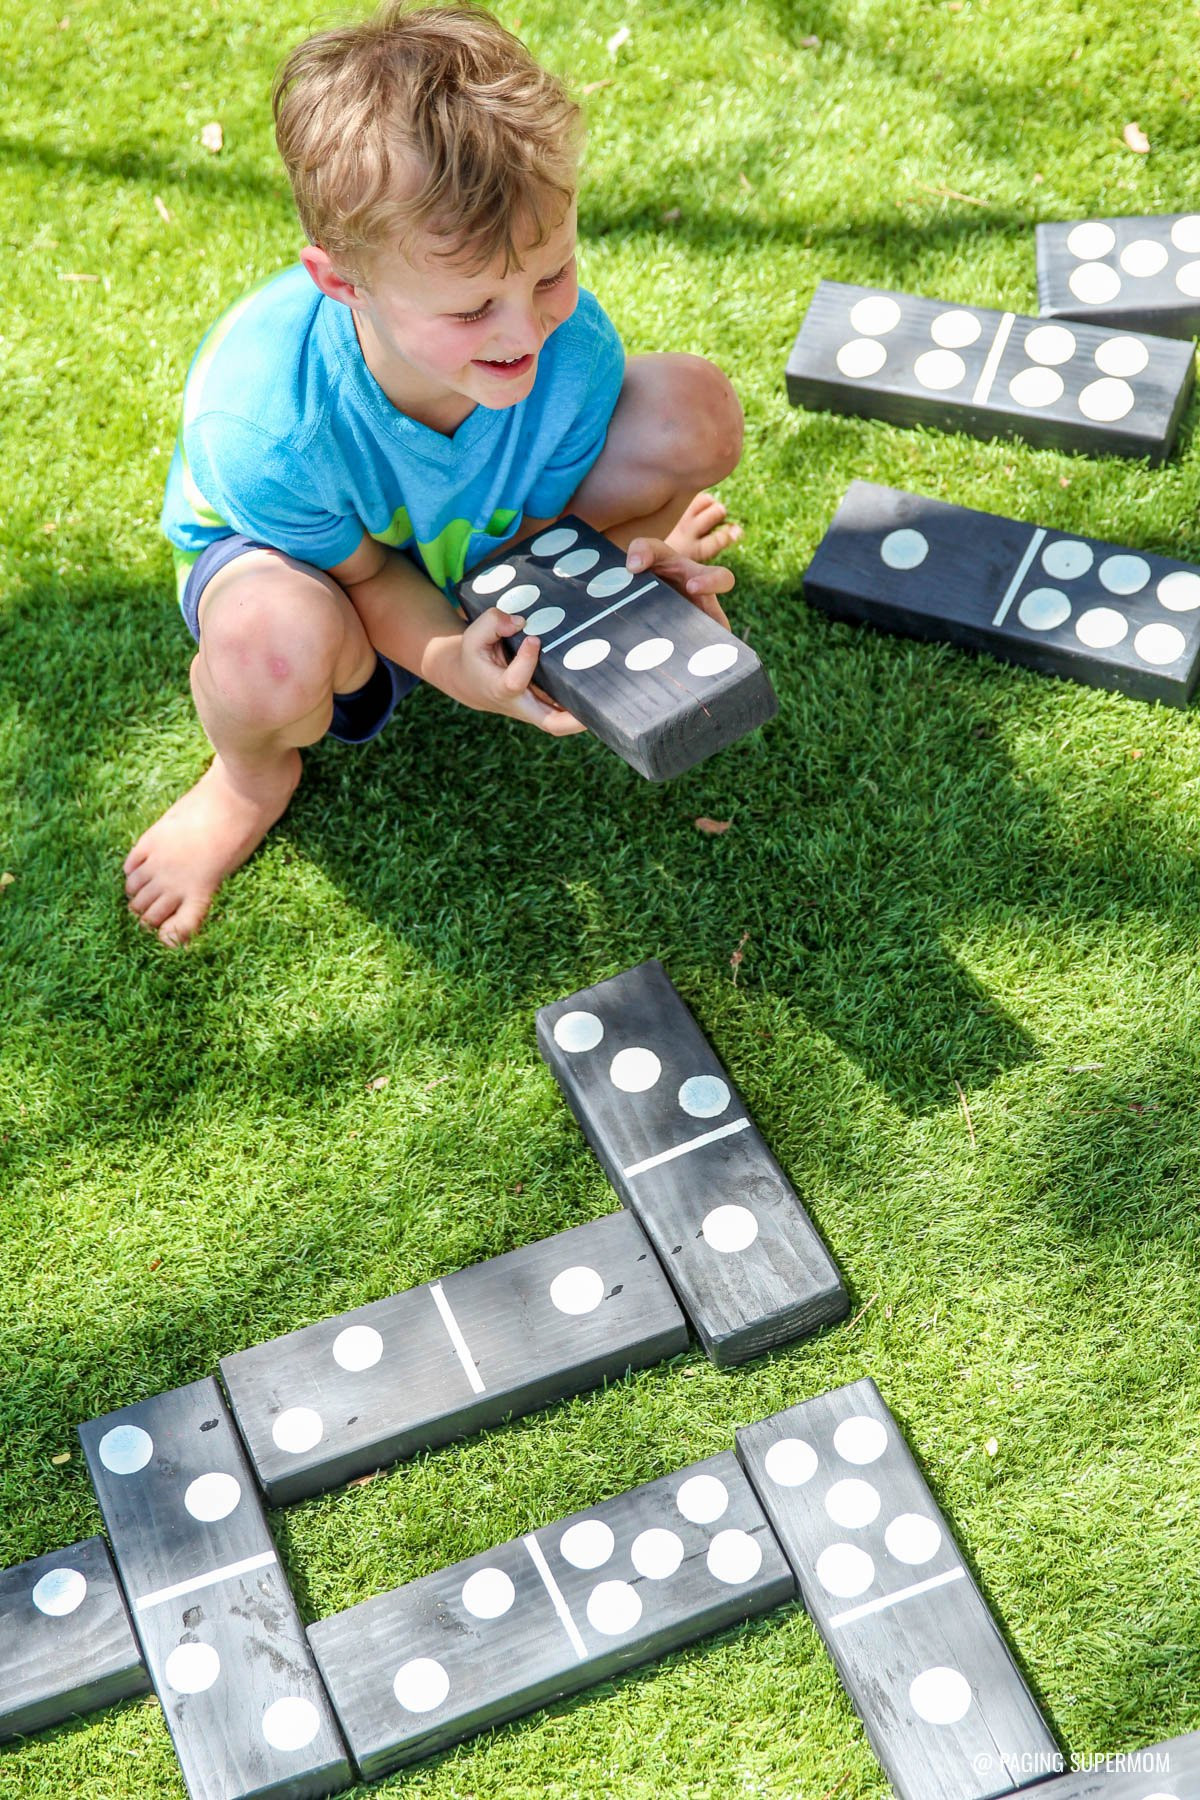 ... Giant Backyard Dominoes   DIY Backyard Games Plans From @HomeDepot Via  @PagingSupermom ...